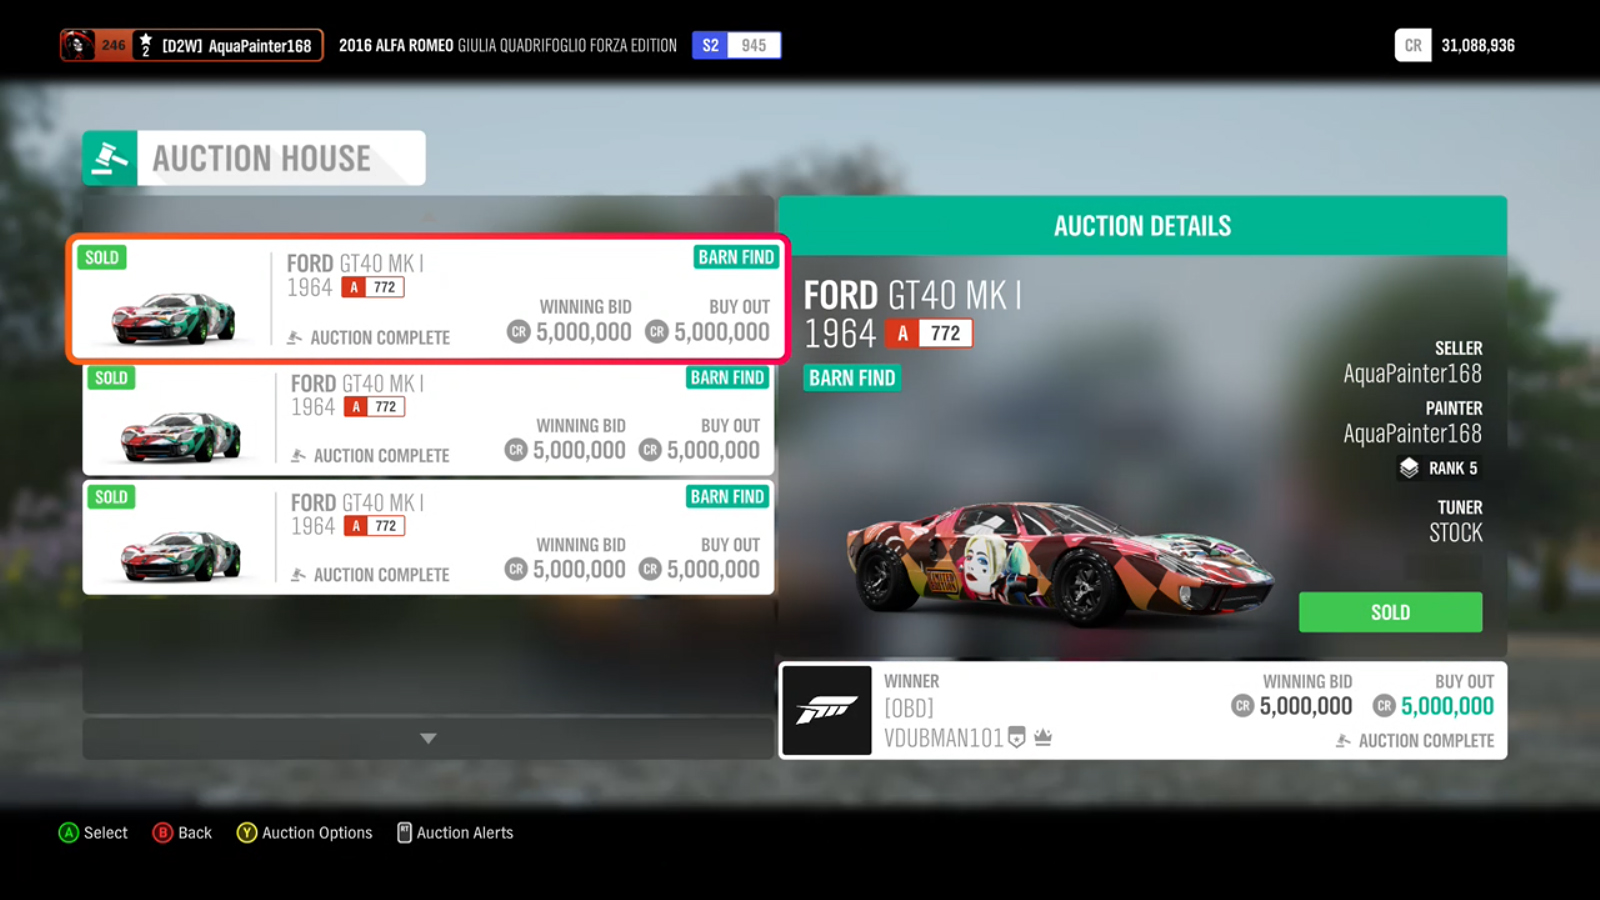 For those saying you can't make money in the auction - Forza